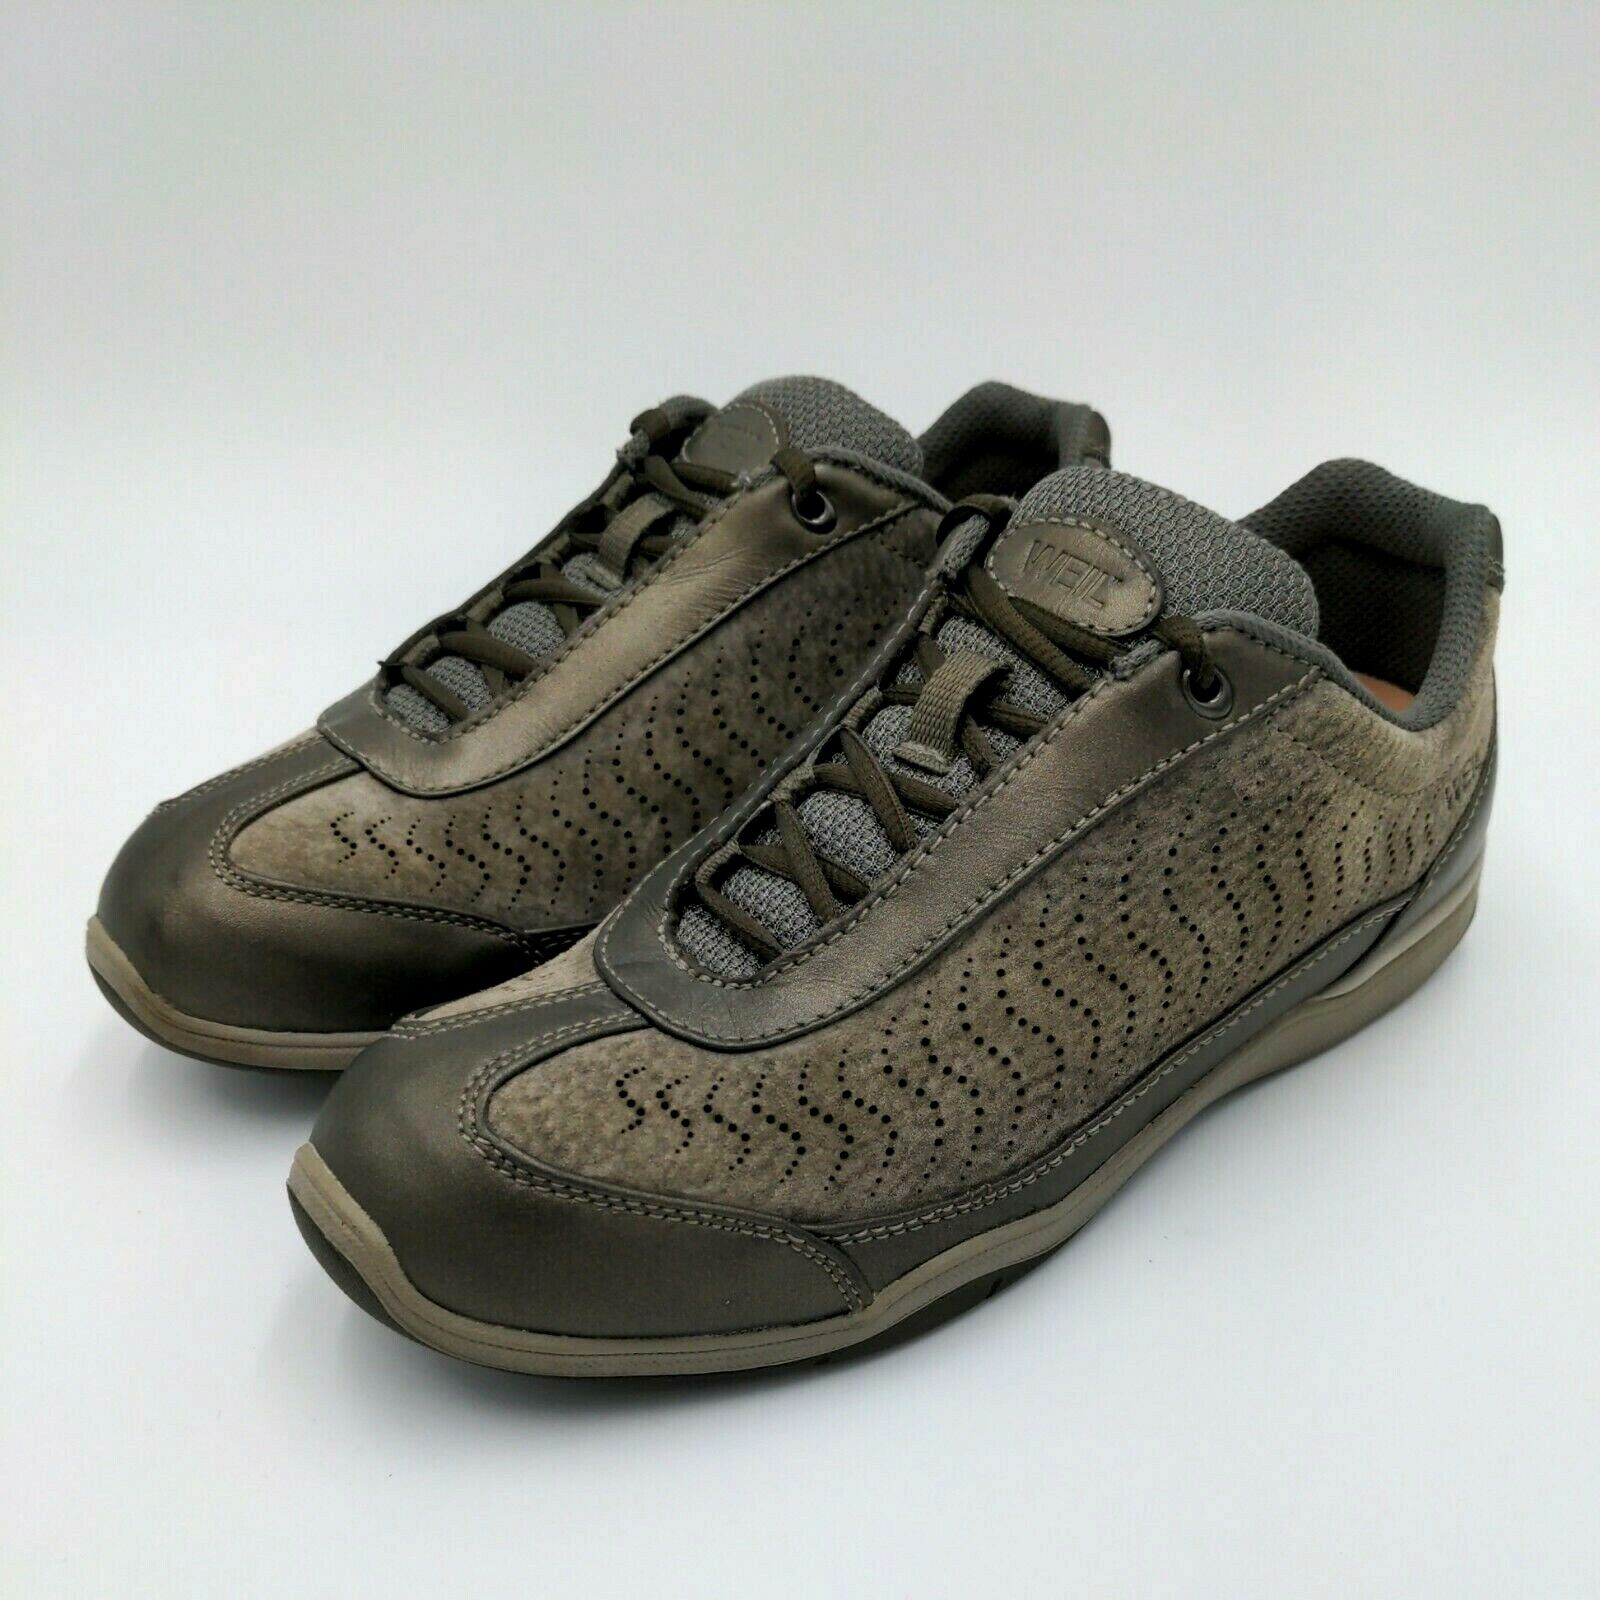 Dr. Andrew Weil Womens Balance II Leather Shoes Size 8